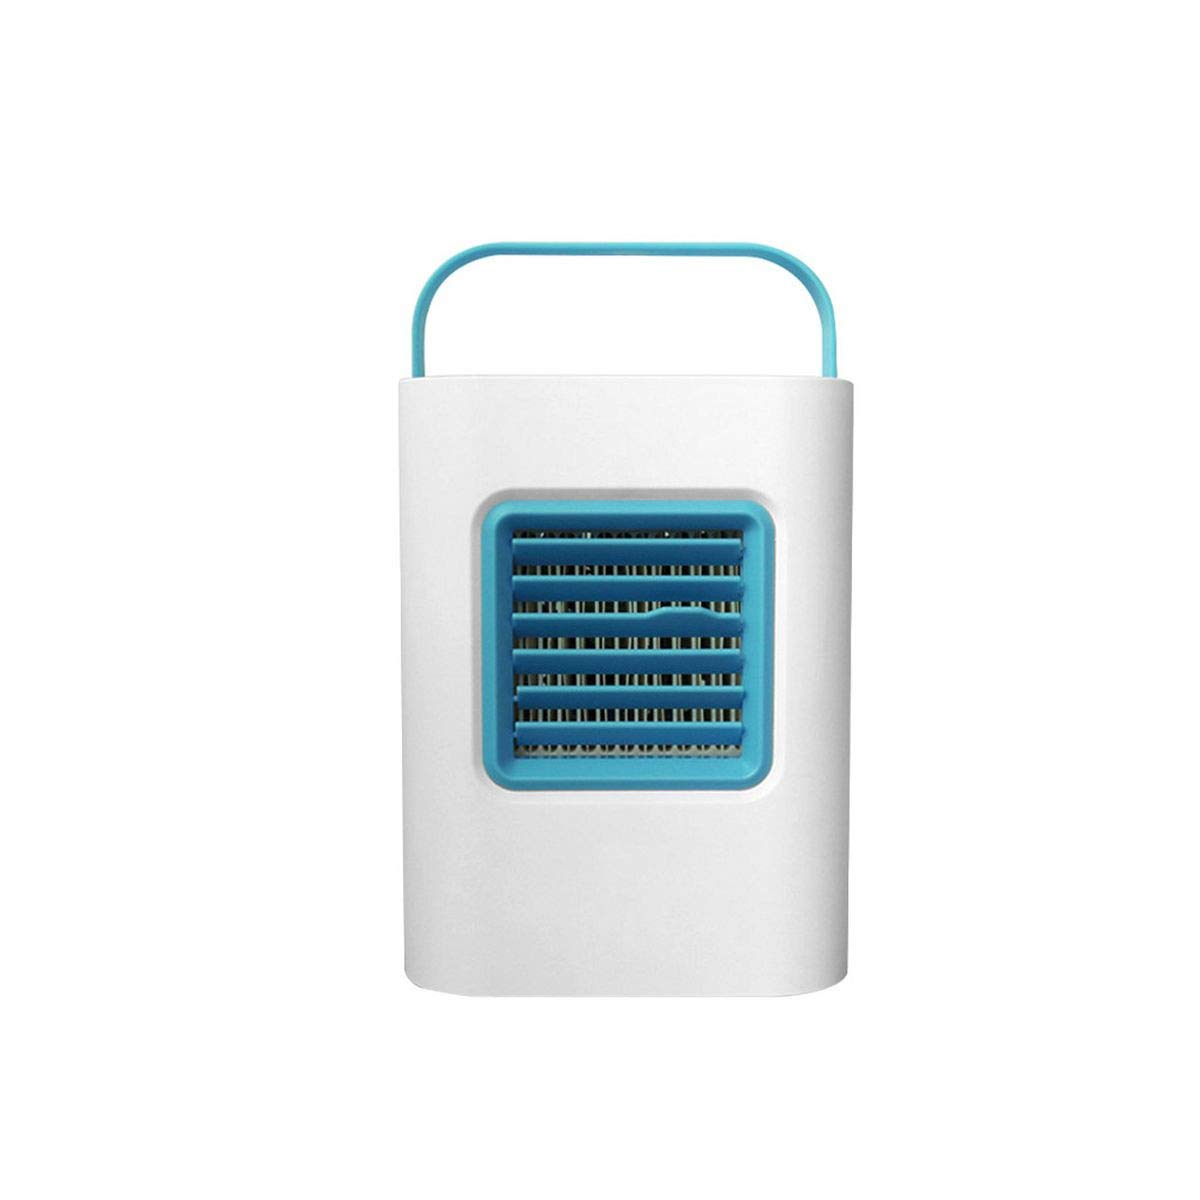 Meiliwanju Personal Air Cooler, USB Evaporative Coolers with Waterbox, Portable LED Table Fan 3 Fan Speed USB Charging Ultra-Quiet Table Fan (Blue, Free)